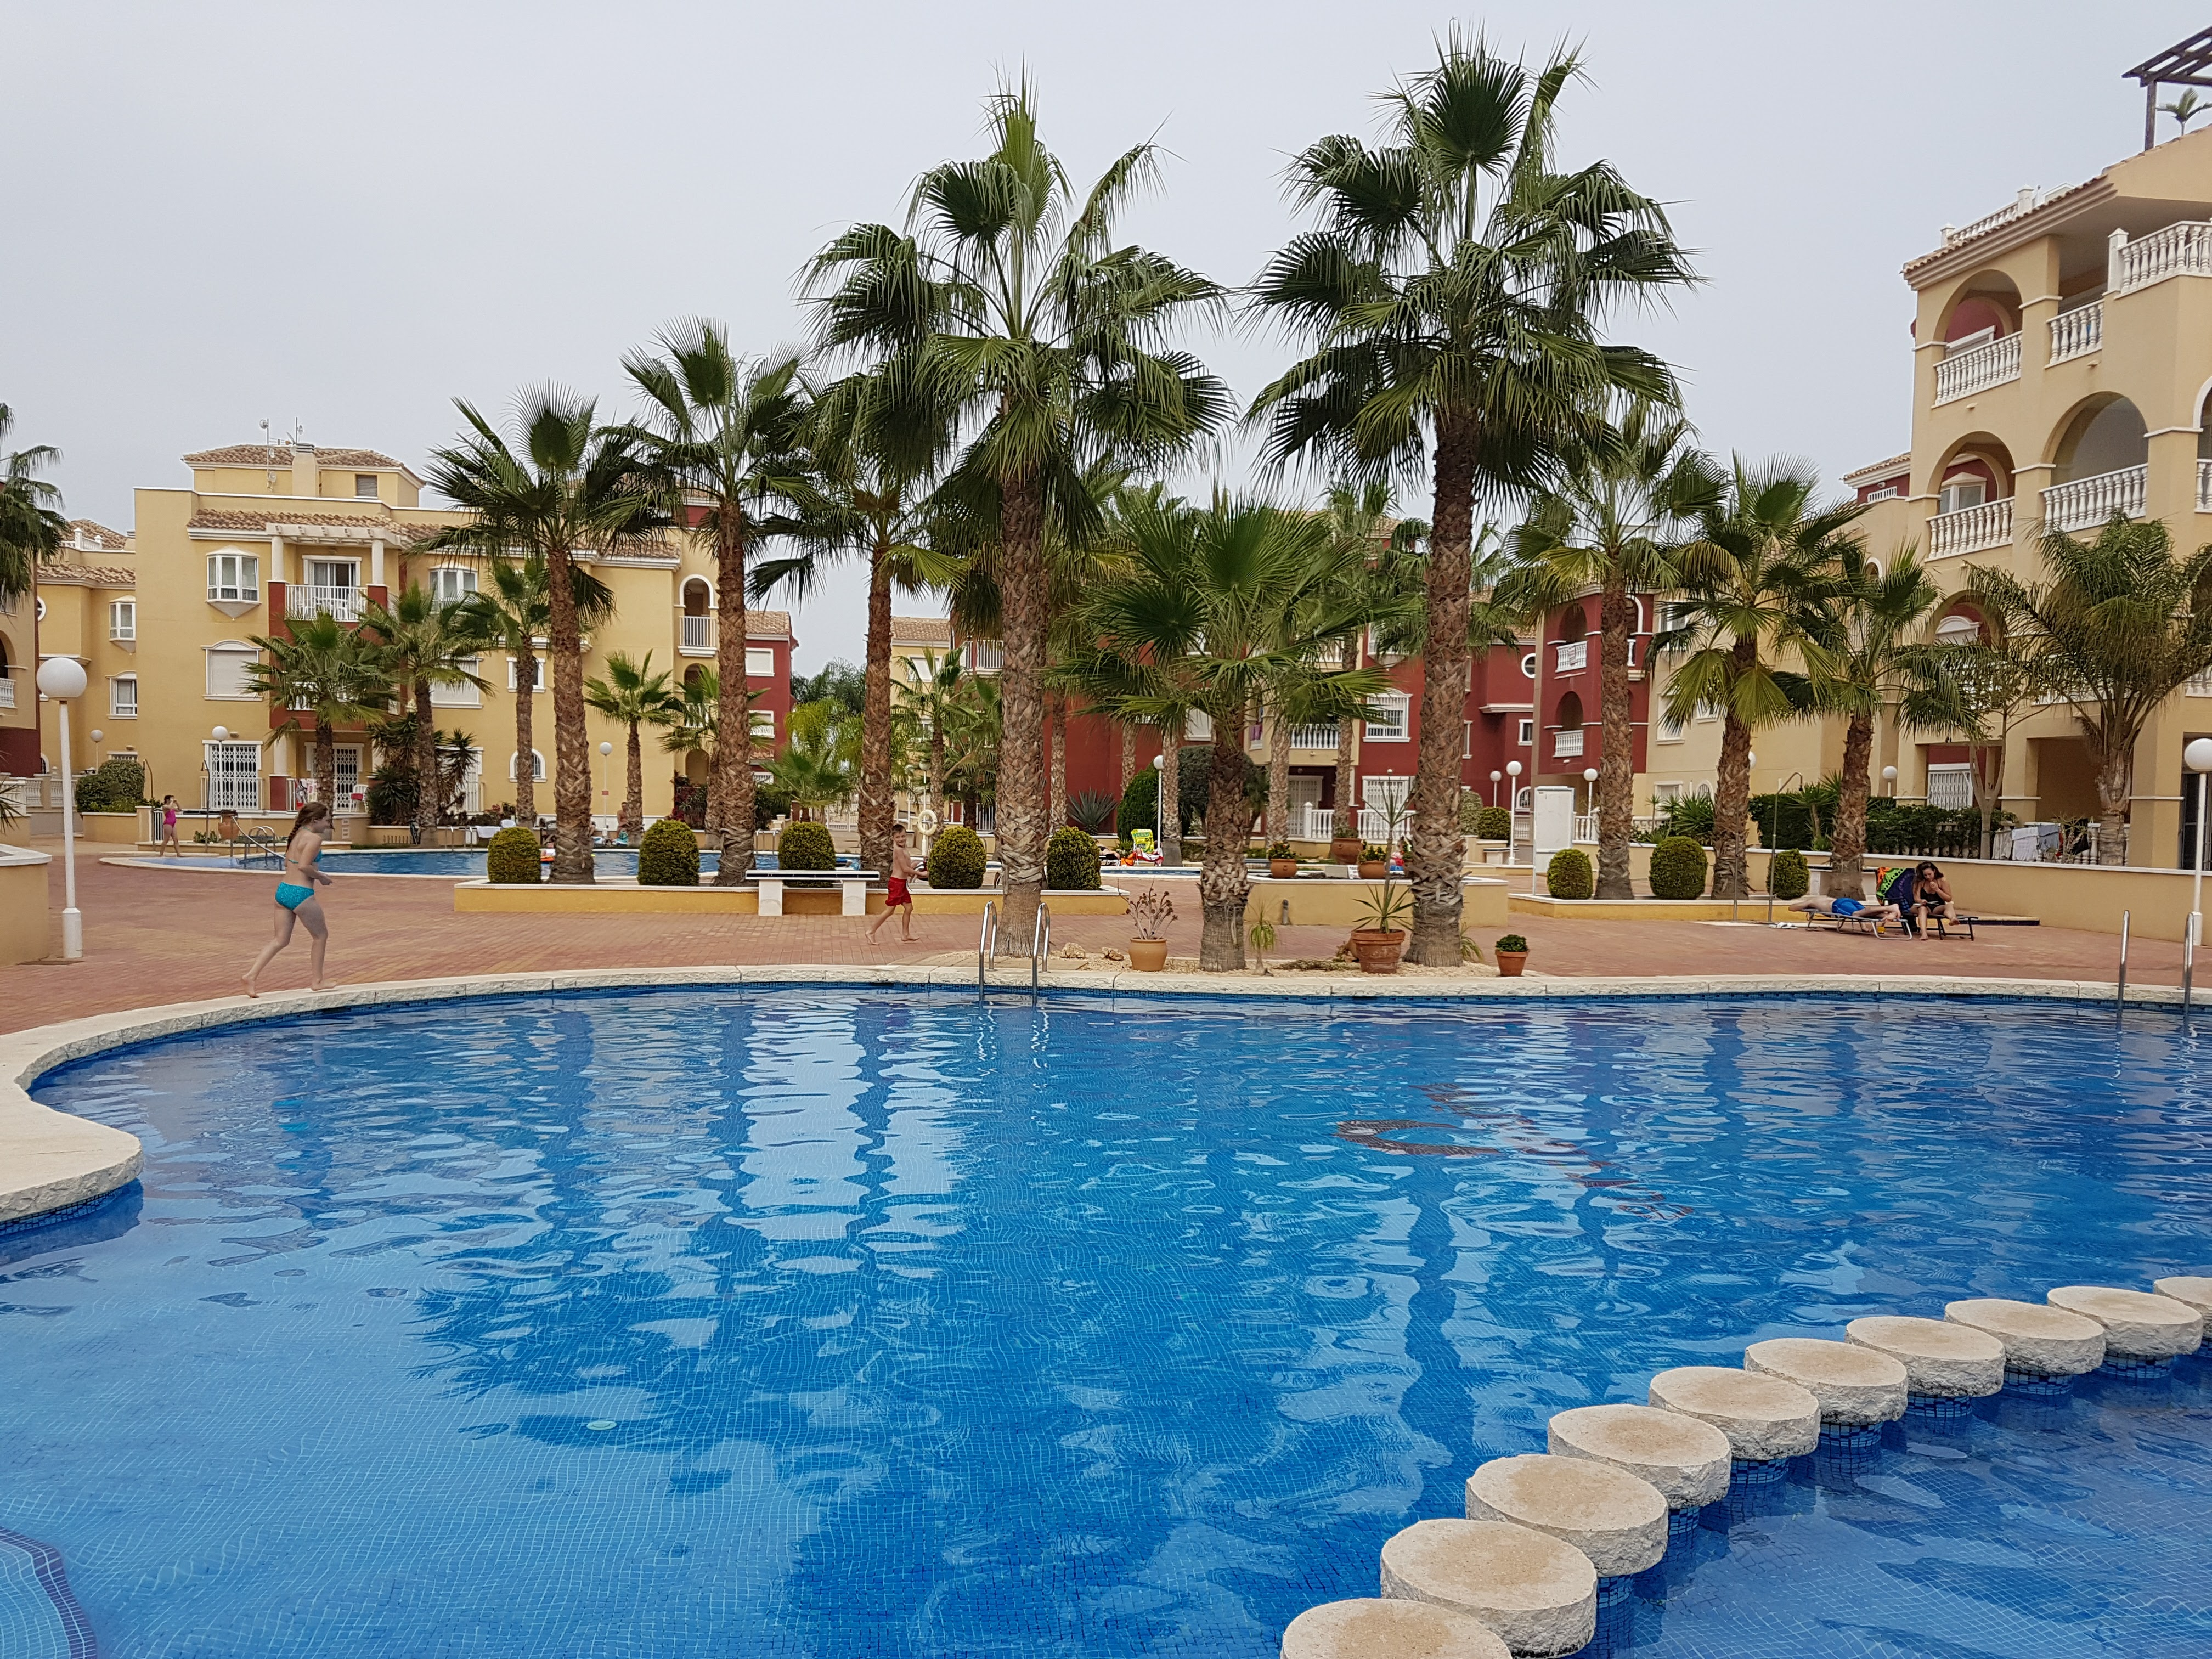 1 of 3 communal pools available